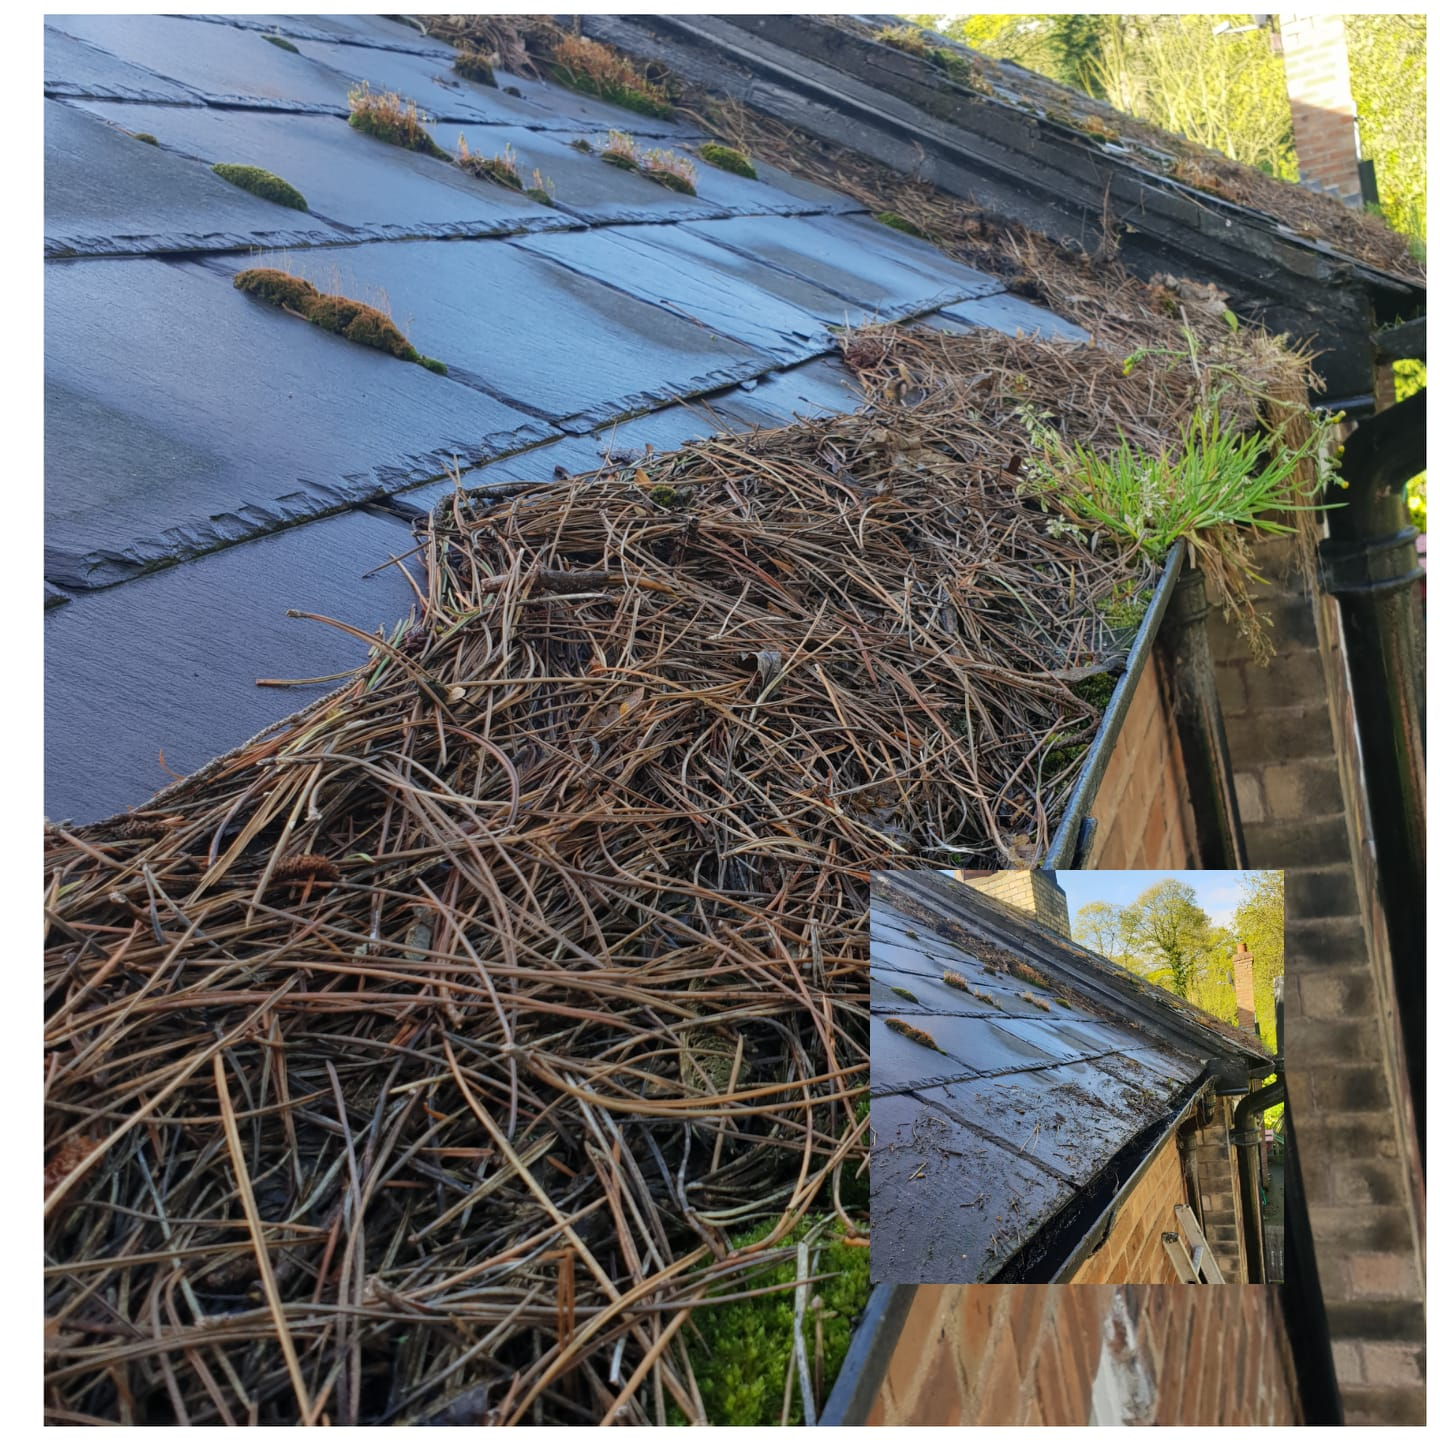 Gutter clearing in Hawarden, Shotton and Queensferry today.: Local Domestic & Commercial Cleaning Services Contractors Near Me in Flintshire, Denbighshire, Wrexham, Cheshire, Wirral, Chester, Liverpool, Cheshire, Shotton, Connah's Quay, Queensferry, Hawarden, Ewloe, Drury, Buckley, Mynydd Isa, Northop, Northop Hall, Mold, Garden City, Saughall, Blacon, Chester, Pentre, Sandycroft, Mancot, Sychdyn, Alltami, Pen Y Ffordd, Higher Kinnerton, Deeside, Chester, Mold and Nearby Areas.